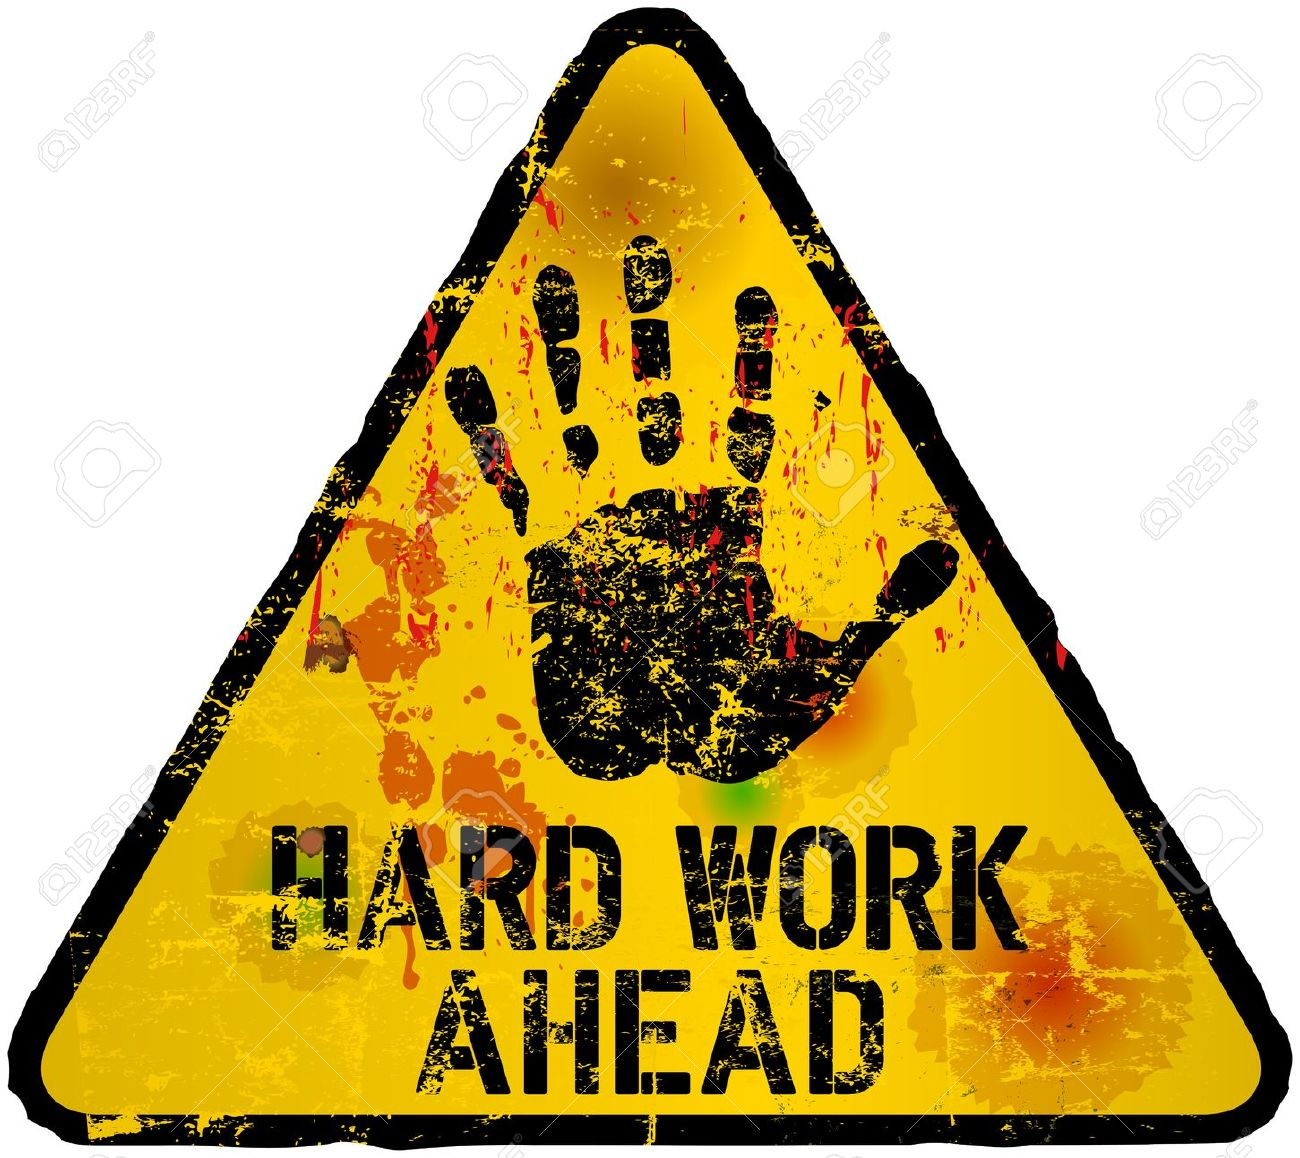 Hard Work Clip Art Free Jpeg 450x398 Hard Work Clip, Hard Work.